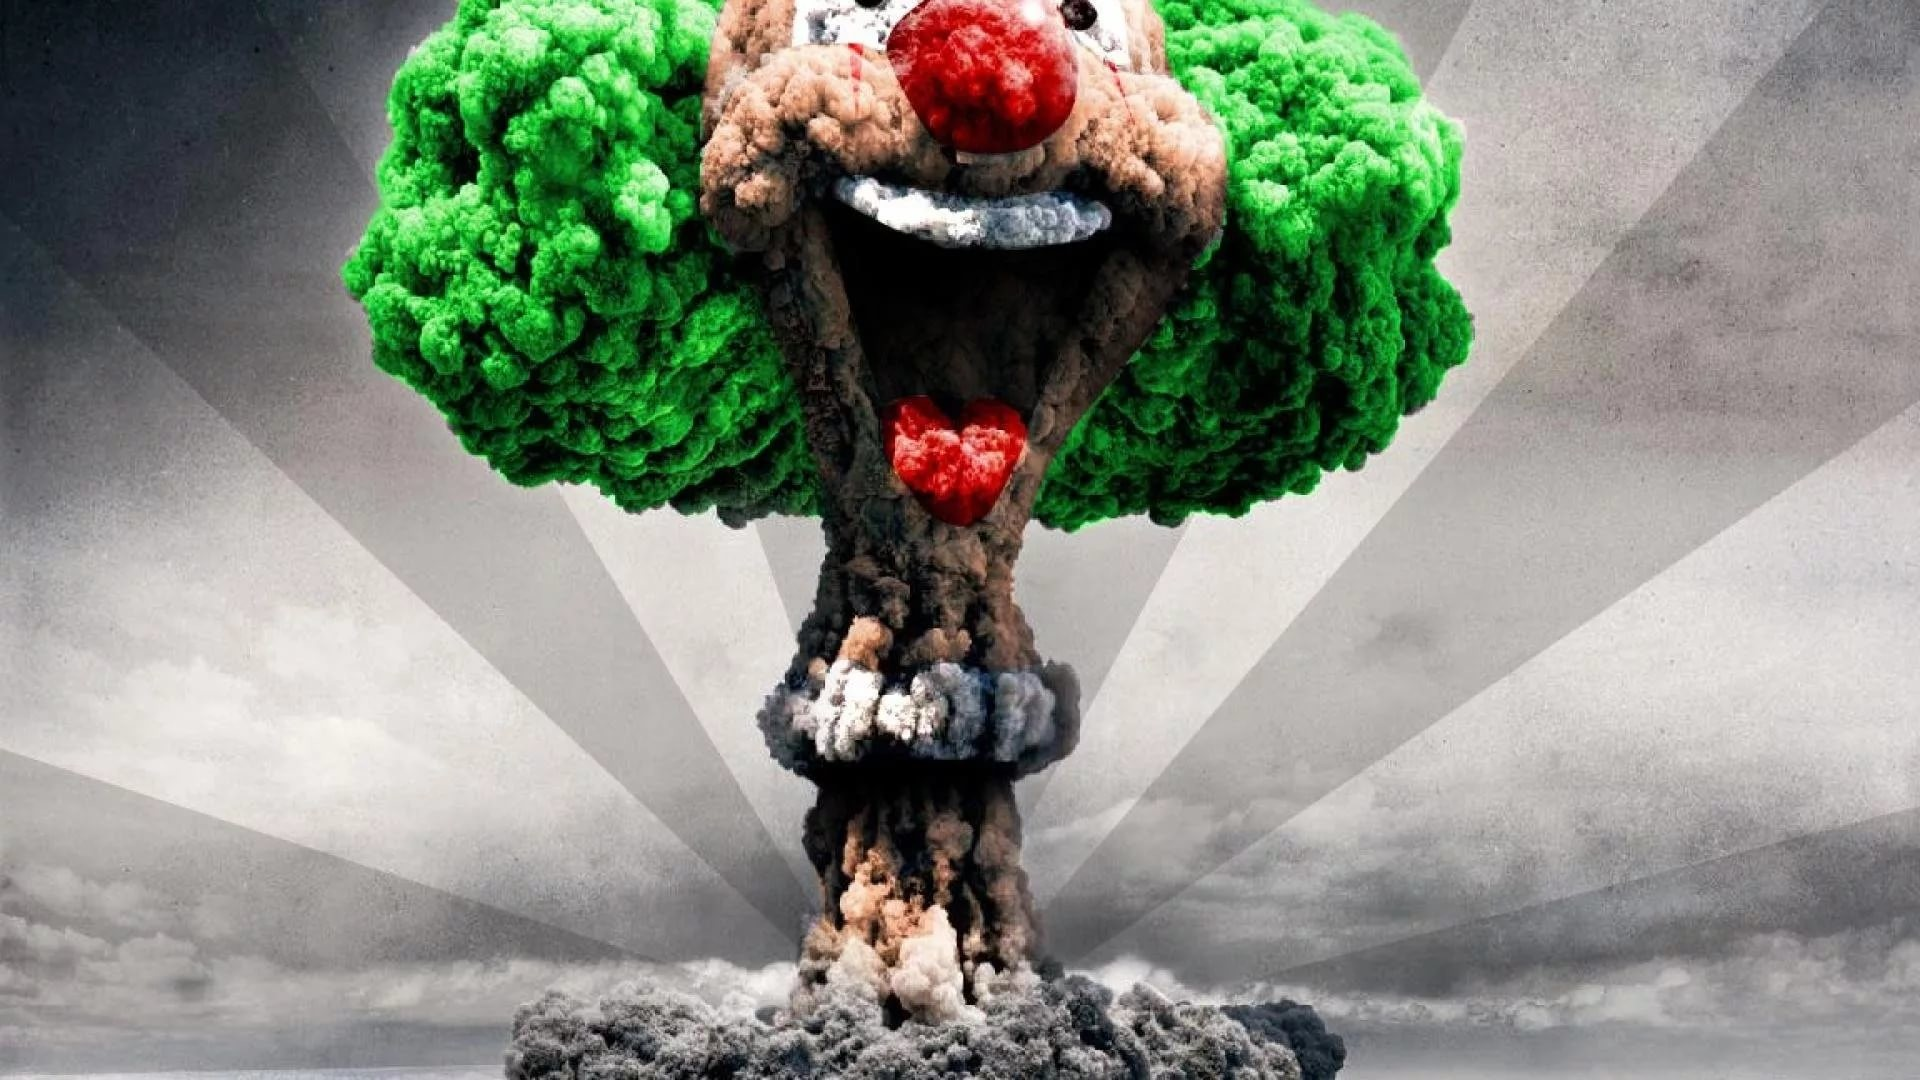 1920x1080 ... Mushroom Clouds Wallpaper ...